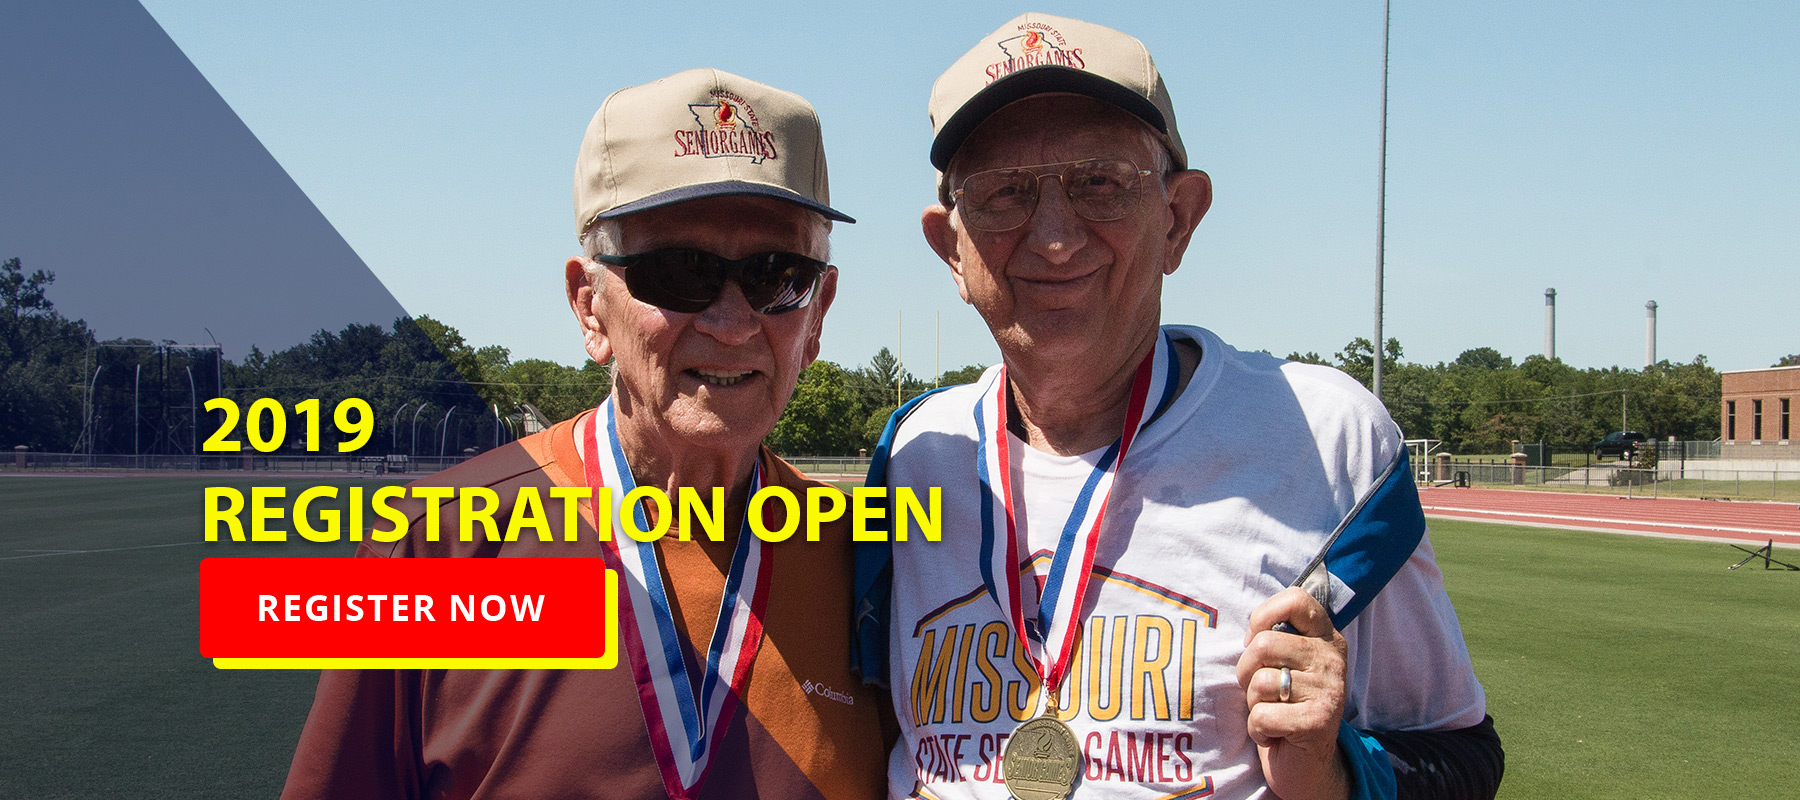 Missouri State Senior Games Registration Open